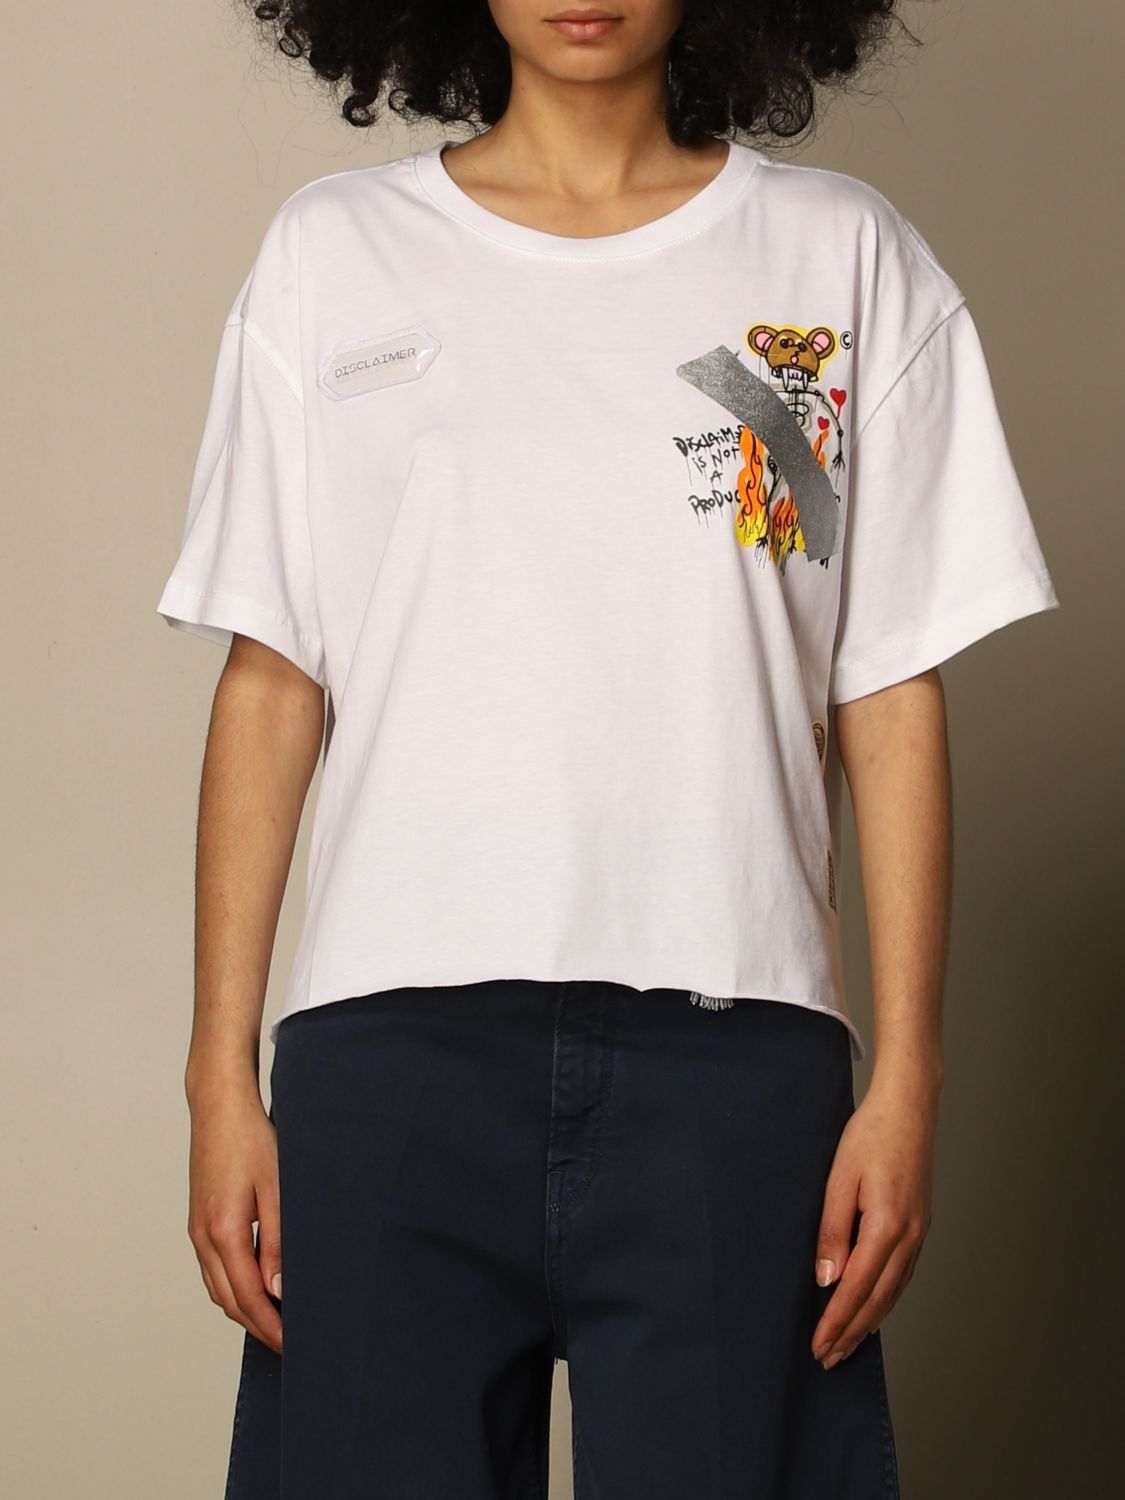 T-Shirt Disclaimer: Disclaimer cropped t-shirt with prints white 1